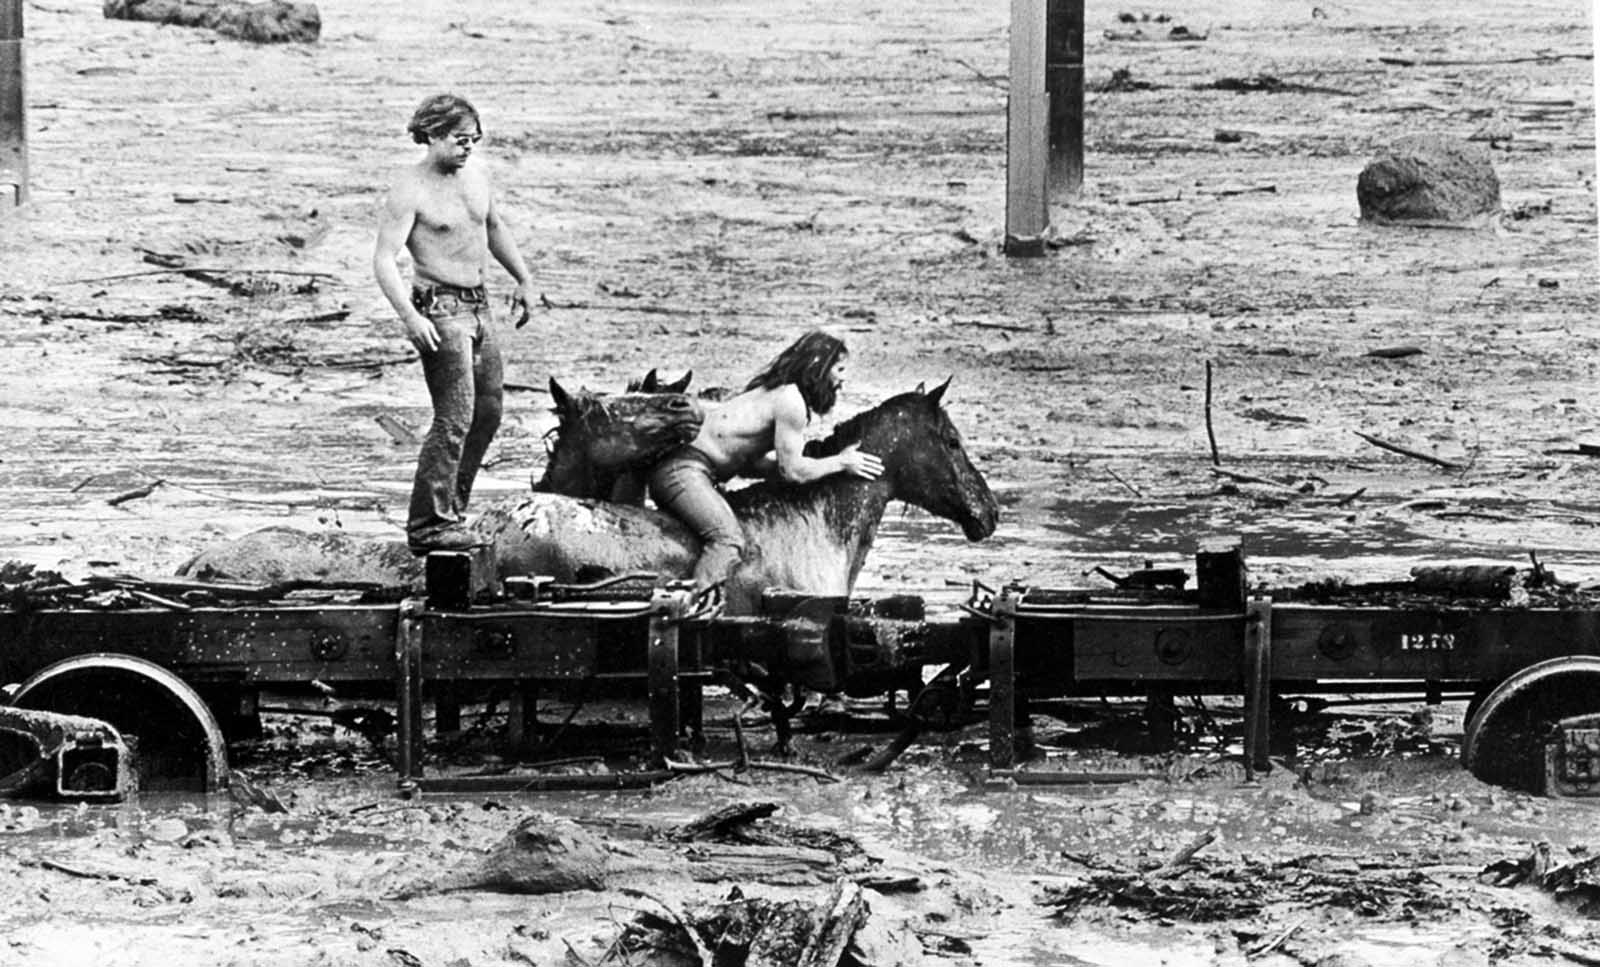 Bob Brown, left, and his brother John attempt to lead three horses to safety out of the Weyerhaeuser 19 Mile camp in Kid Valley, Washington. The yard was flooded by the Toutle River following the eruption of Mount St. Helens.